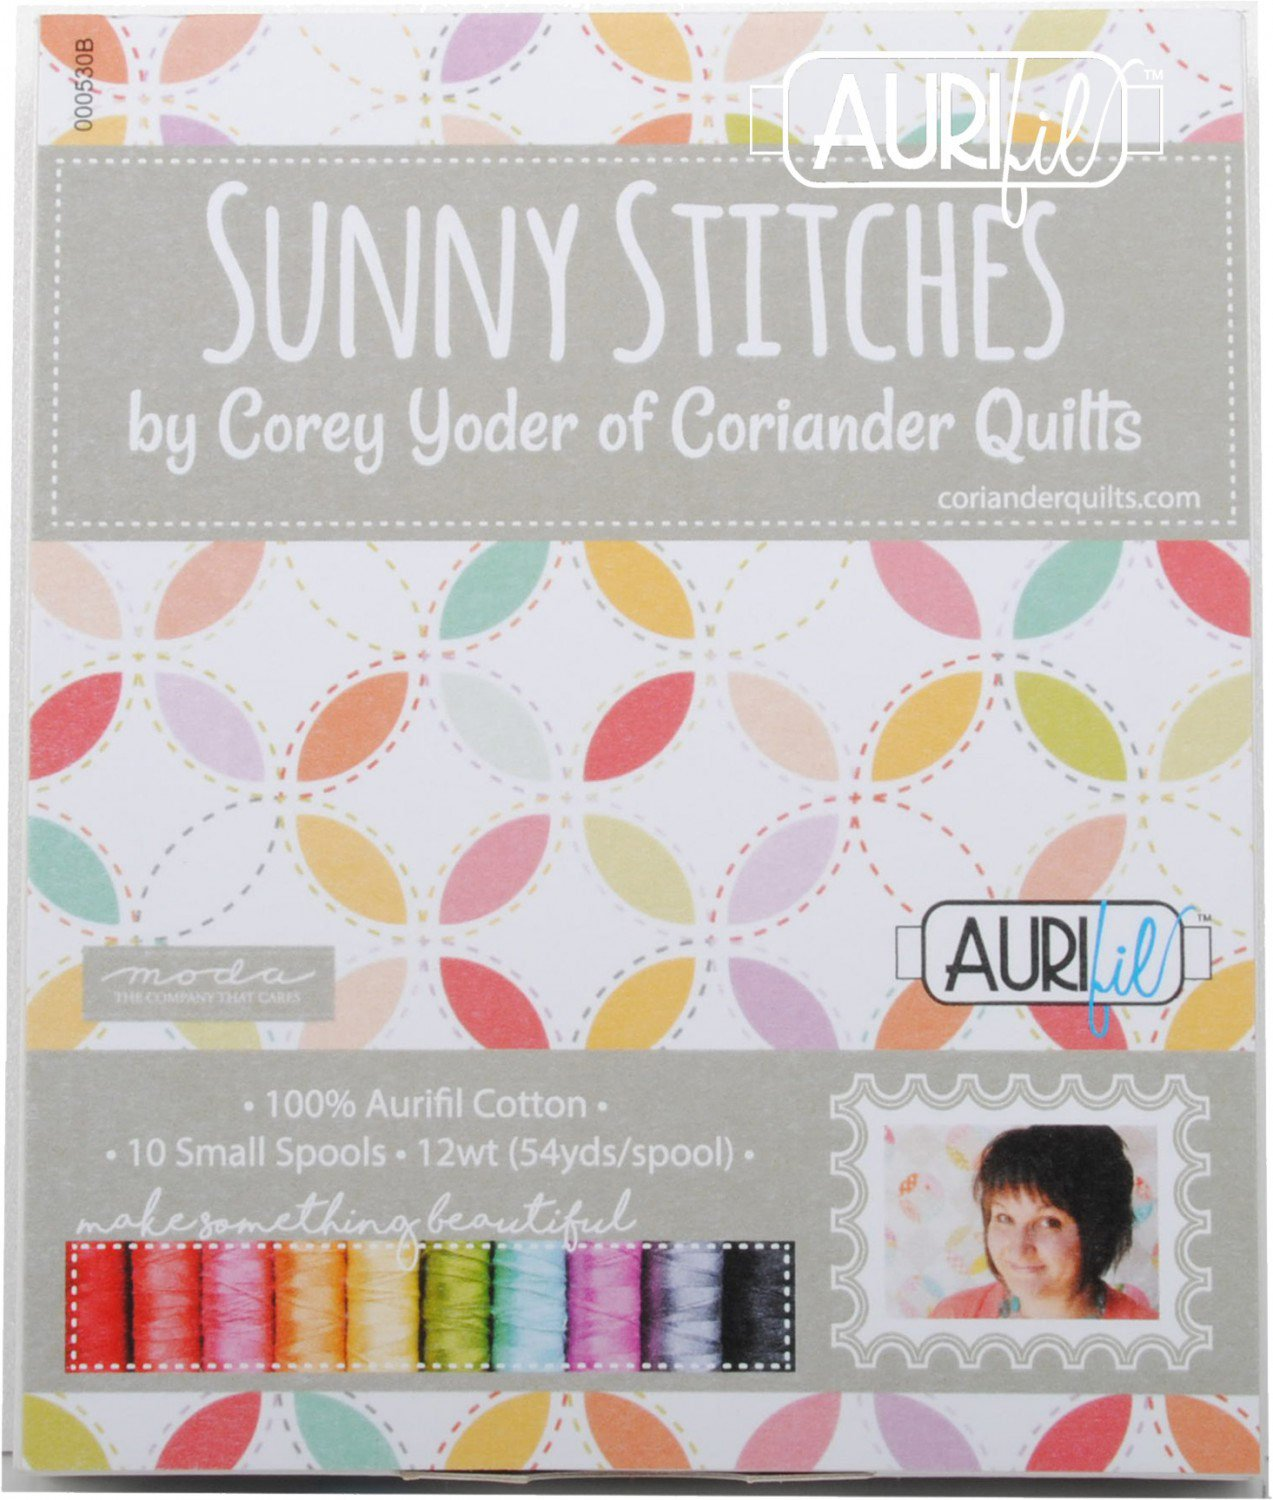 Corey Yoder Sunny Stitches Aurifil Thread Kit 10 Small Spools 12 Weight CY12SS10 by Aurifil